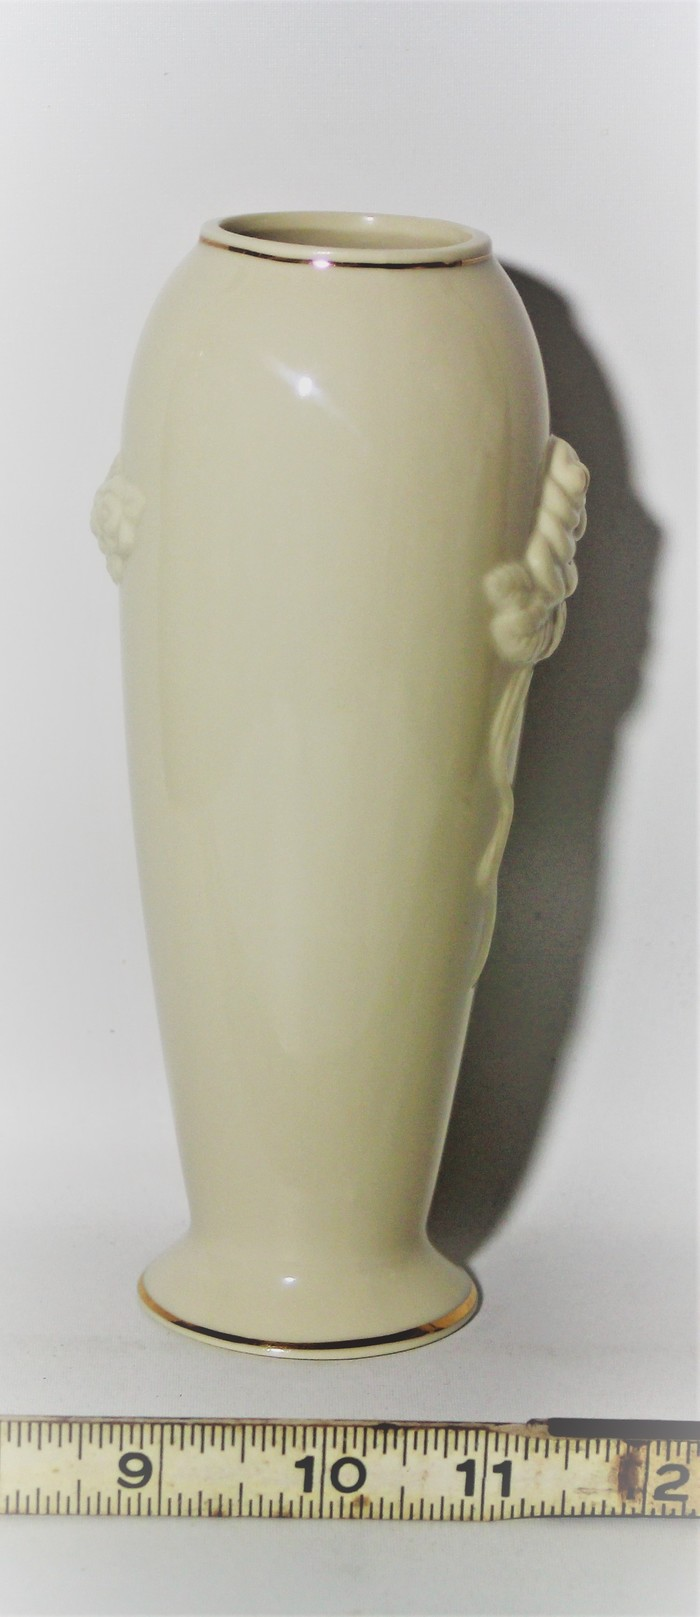 Lenox rosebud 7 bud vasegiftwarevintagehandcrafted in malaysia previously owned bud vase in the rosebud pattern by lenox features sculpted roses with gold trim beautiful made in malaysia between 1984 1986 floridaeventfo Choice Image